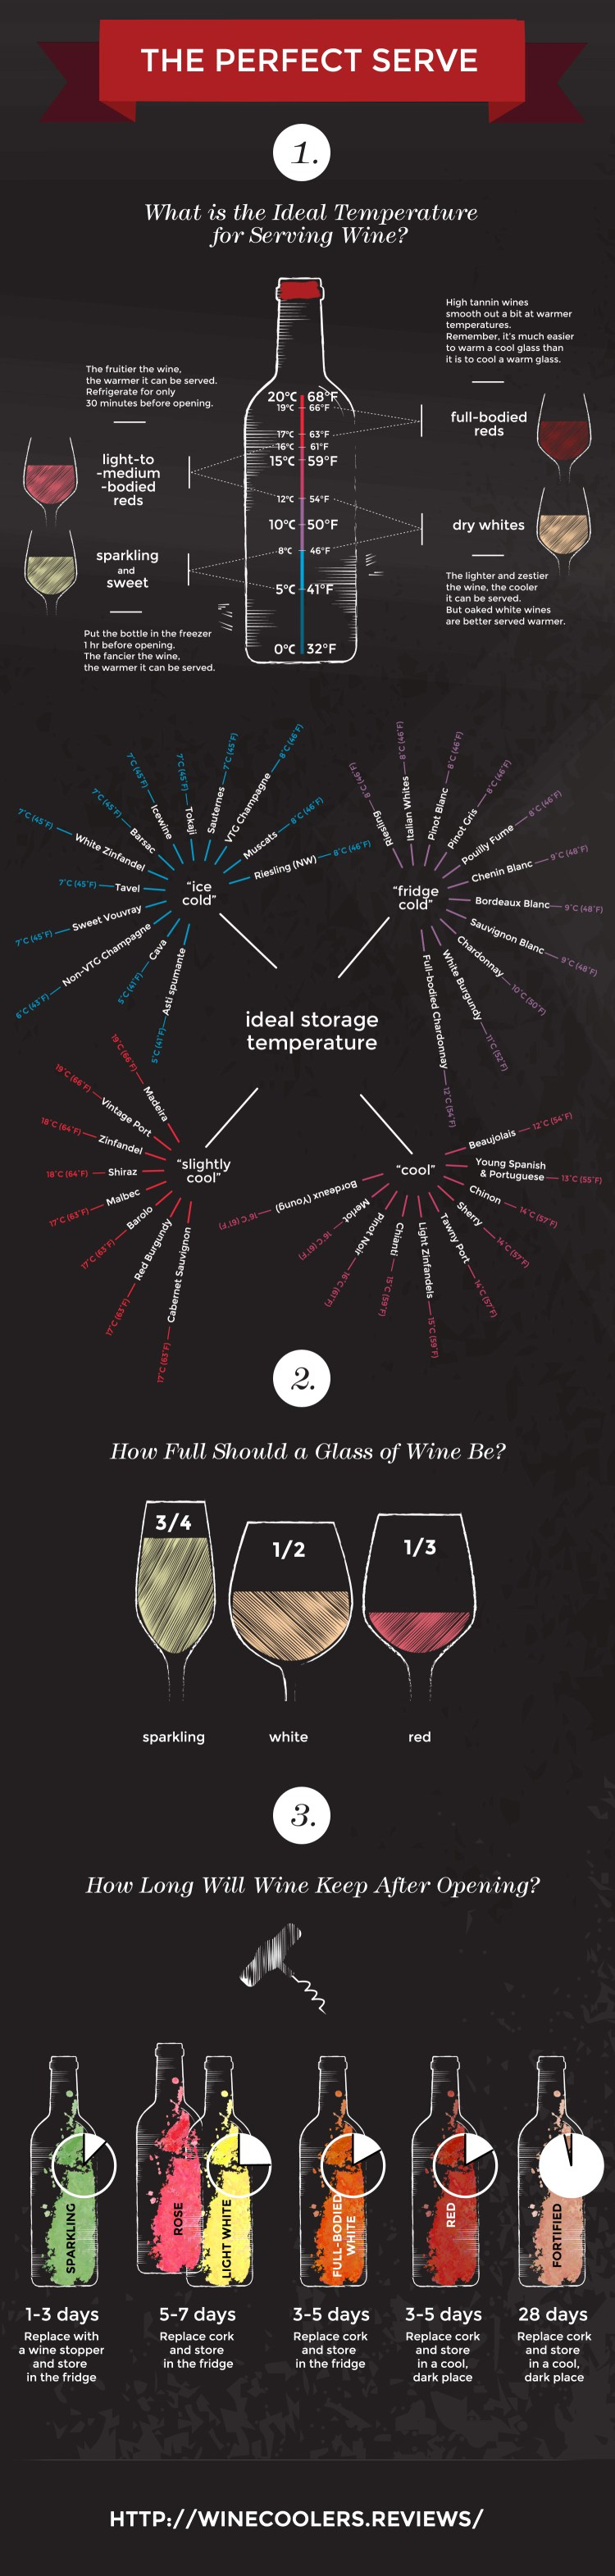 Find out what the ideal temperature for different types of wines to be served